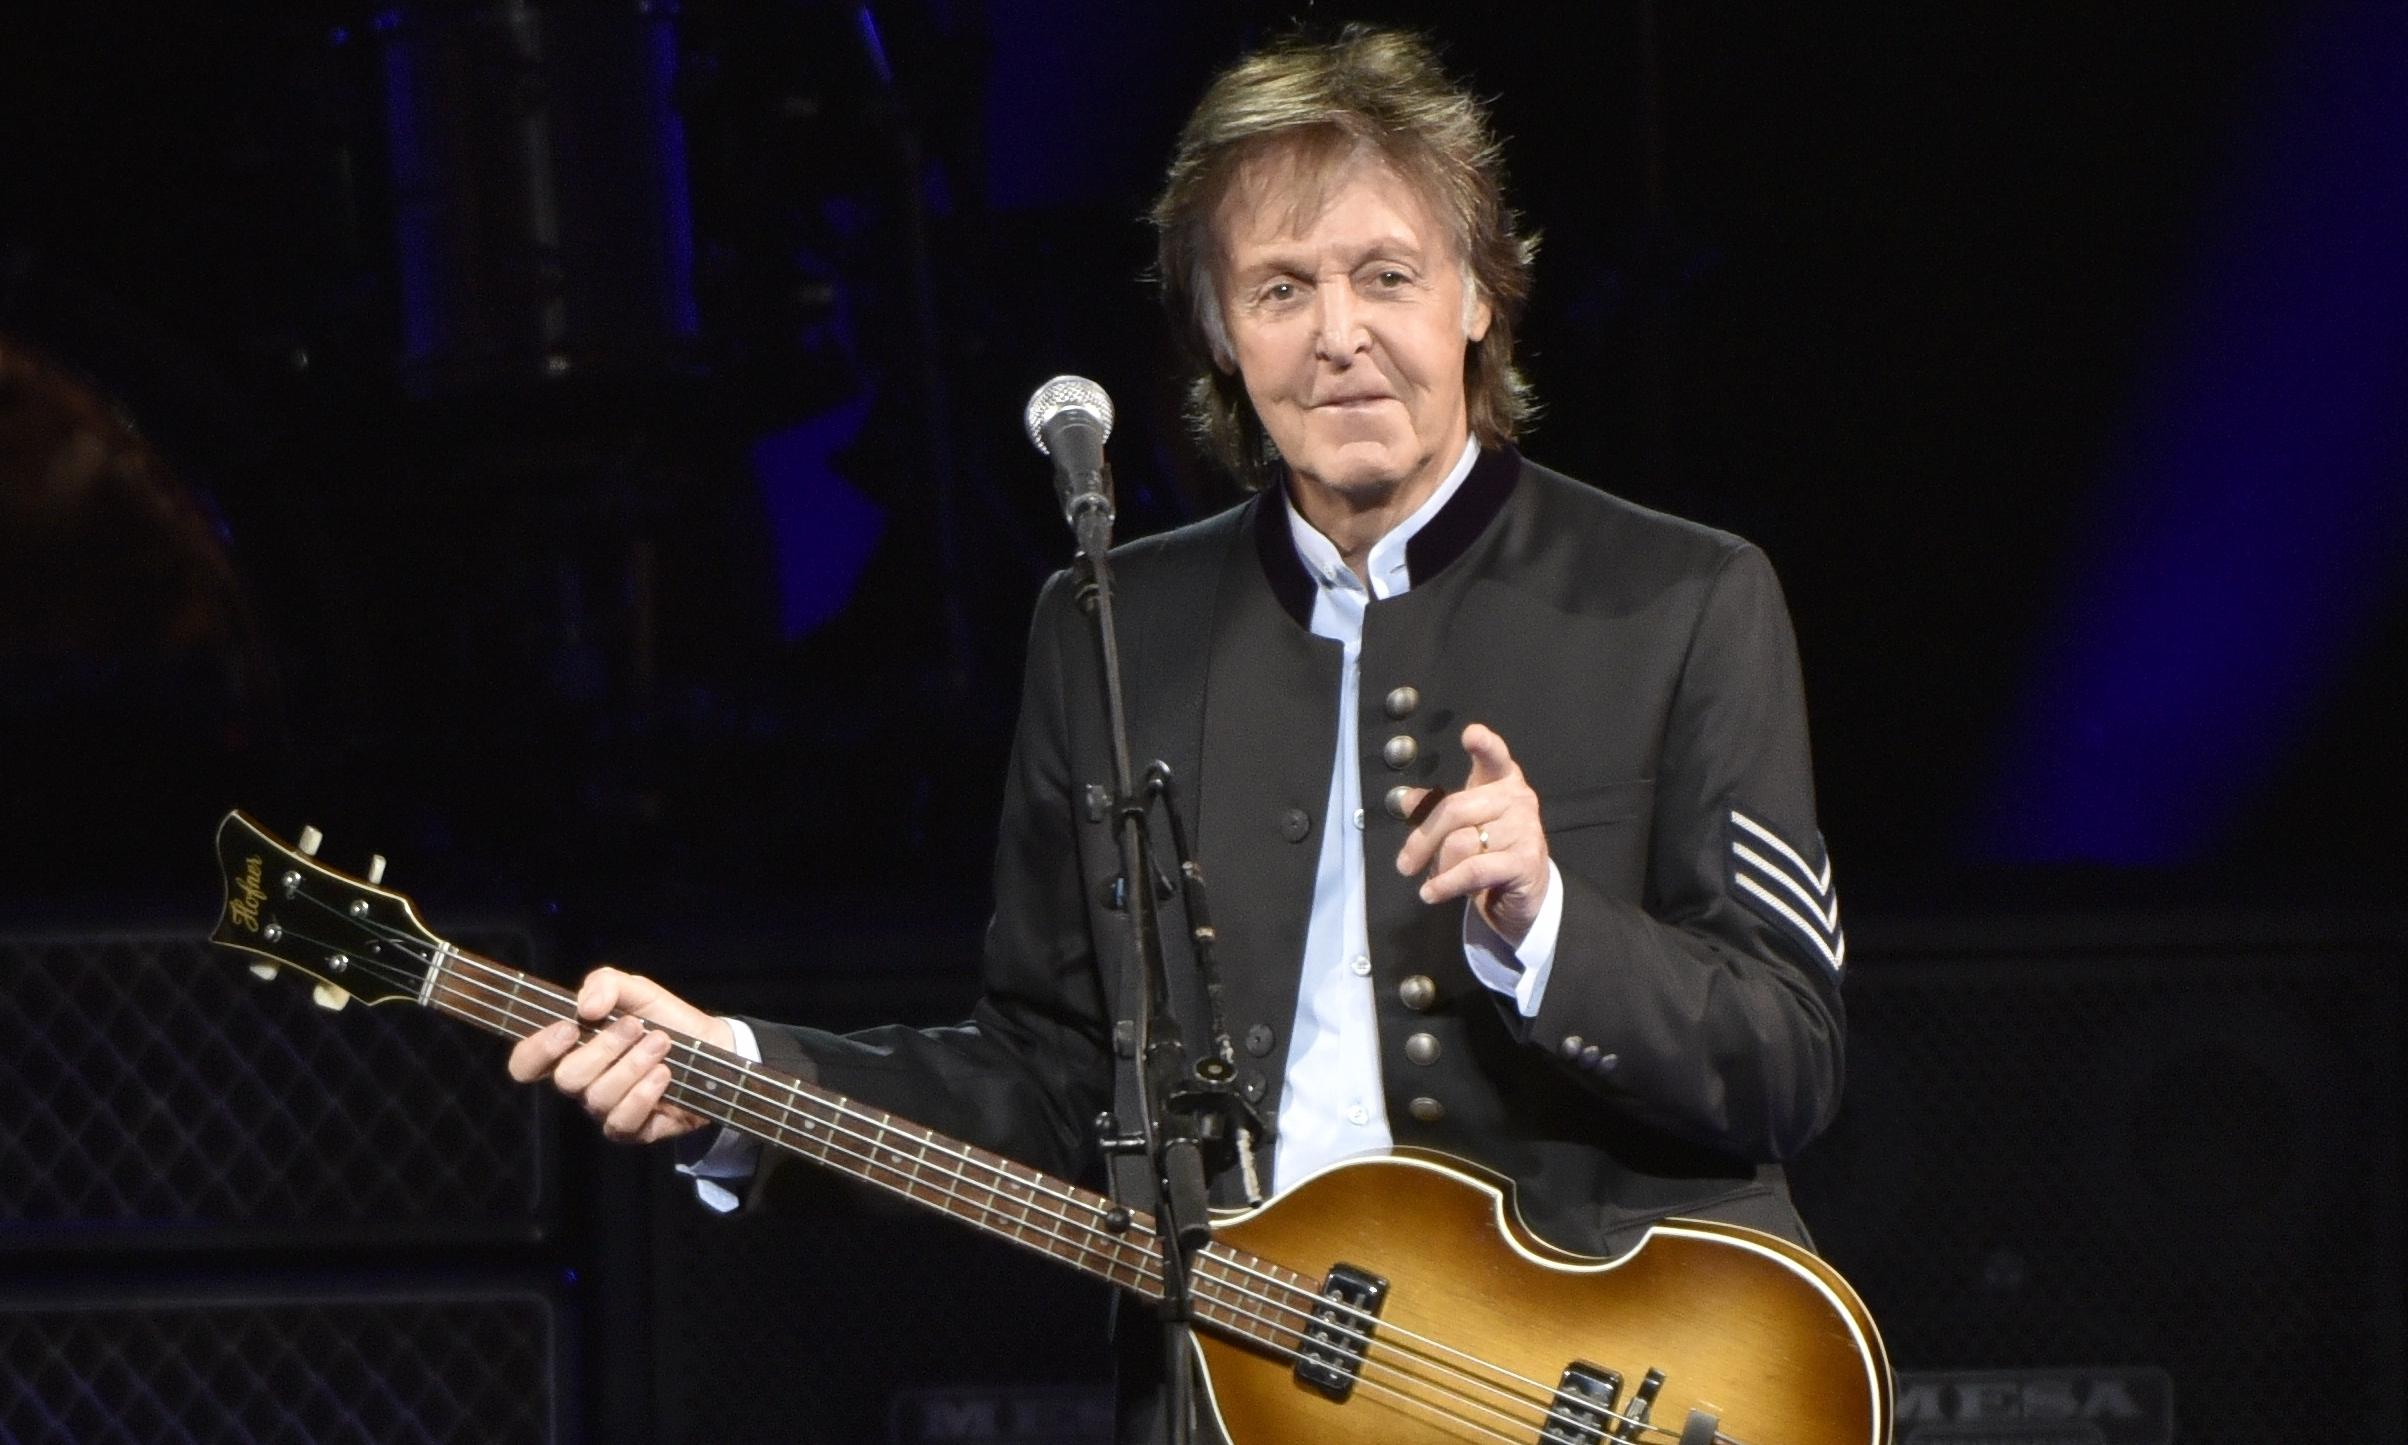 Paul McCartney to release first new solo single in four years